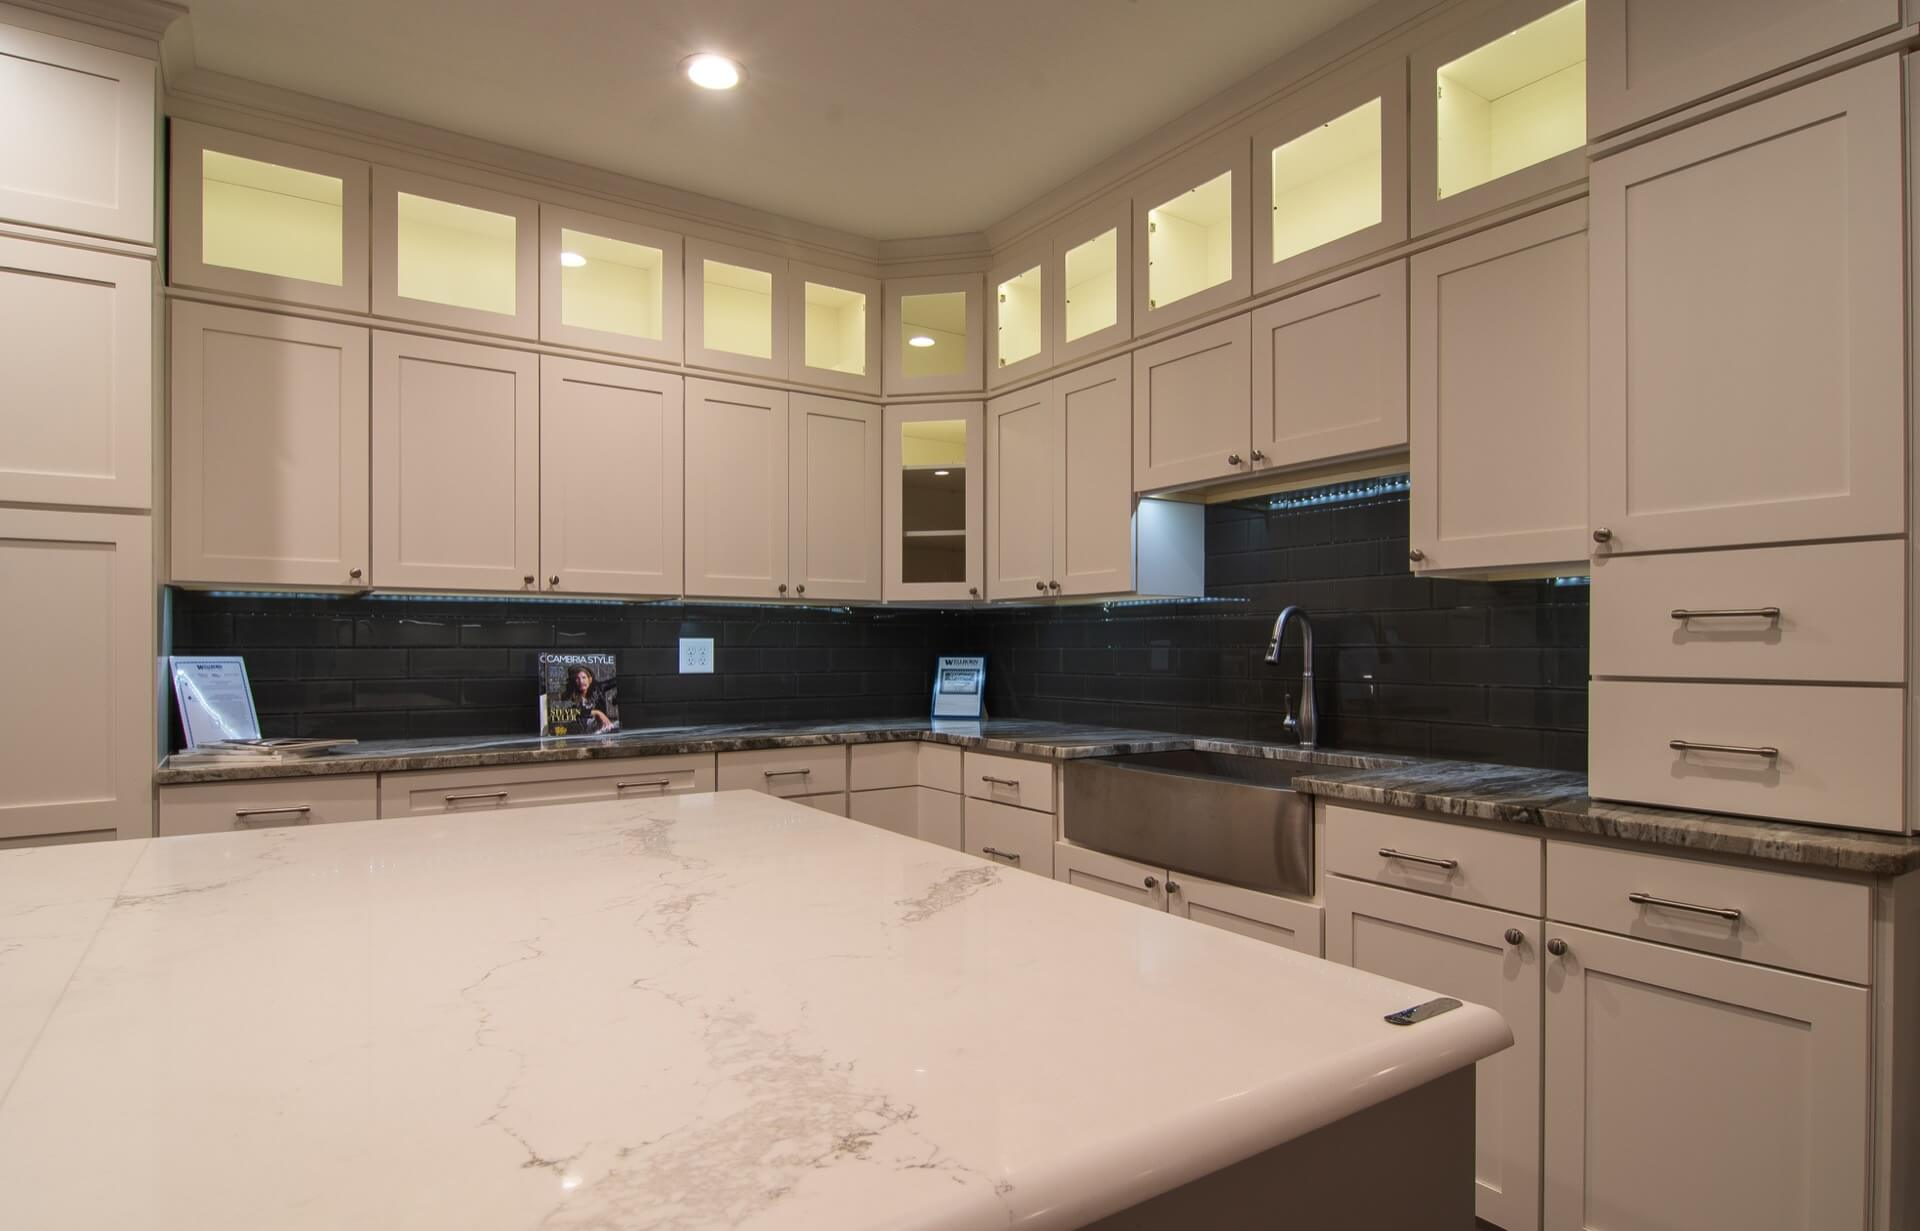 Tour Kitchen & Bath Showroom Gallery | Hundreds of Options